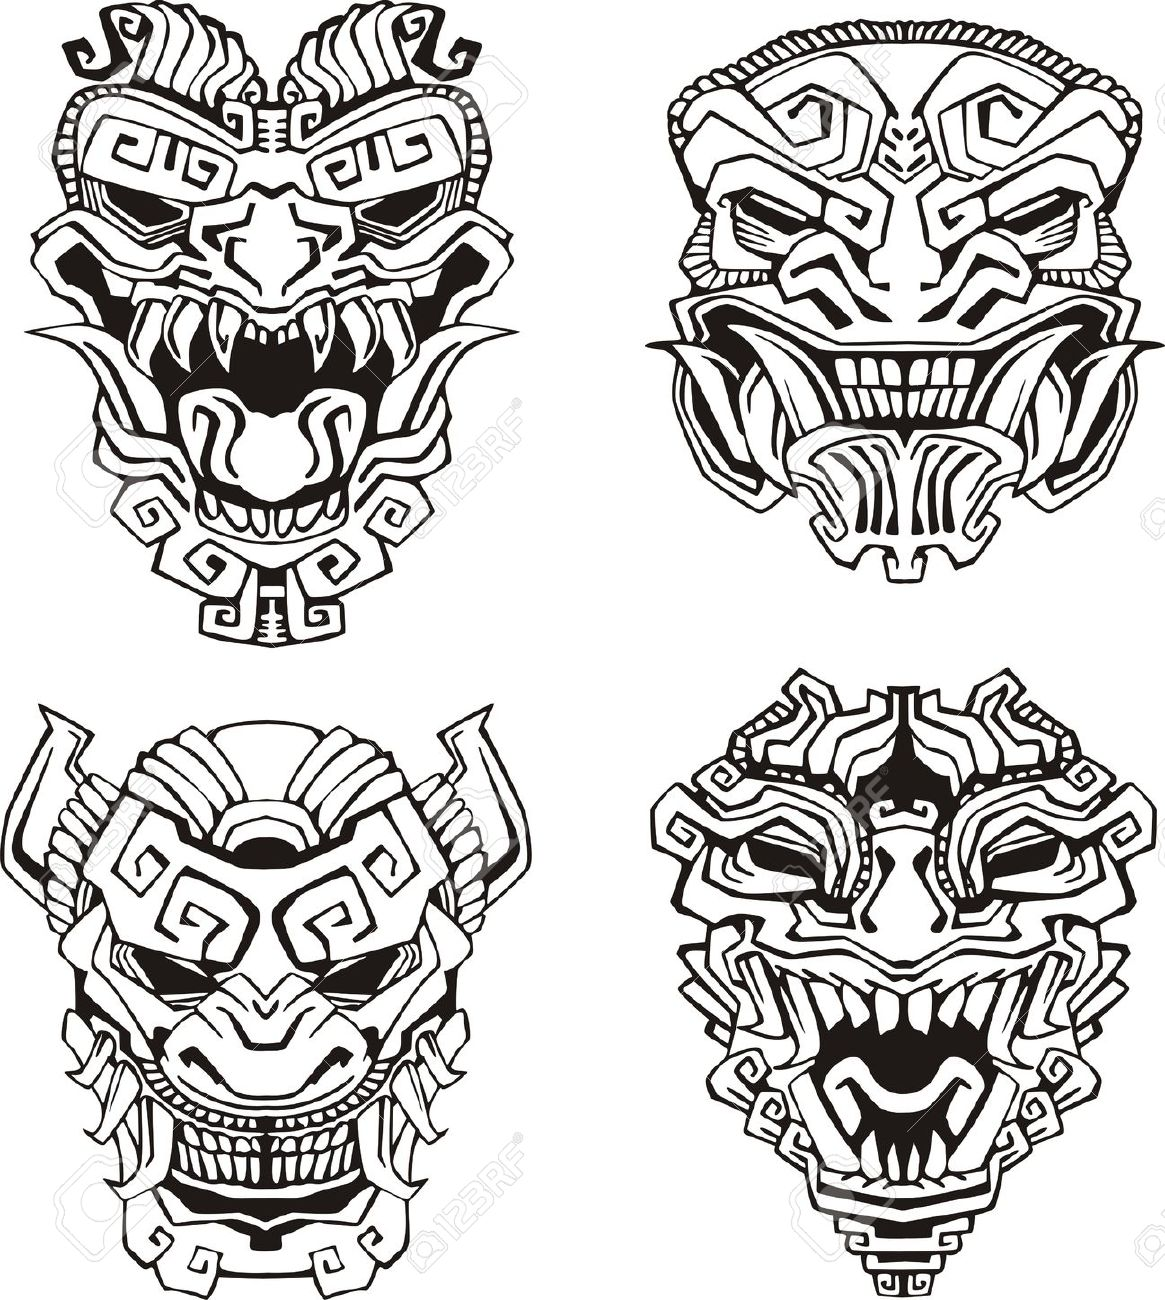 1165x1300 16729496 Aztec Monster Totem Masks Stock Vector Maya.jpg (1165